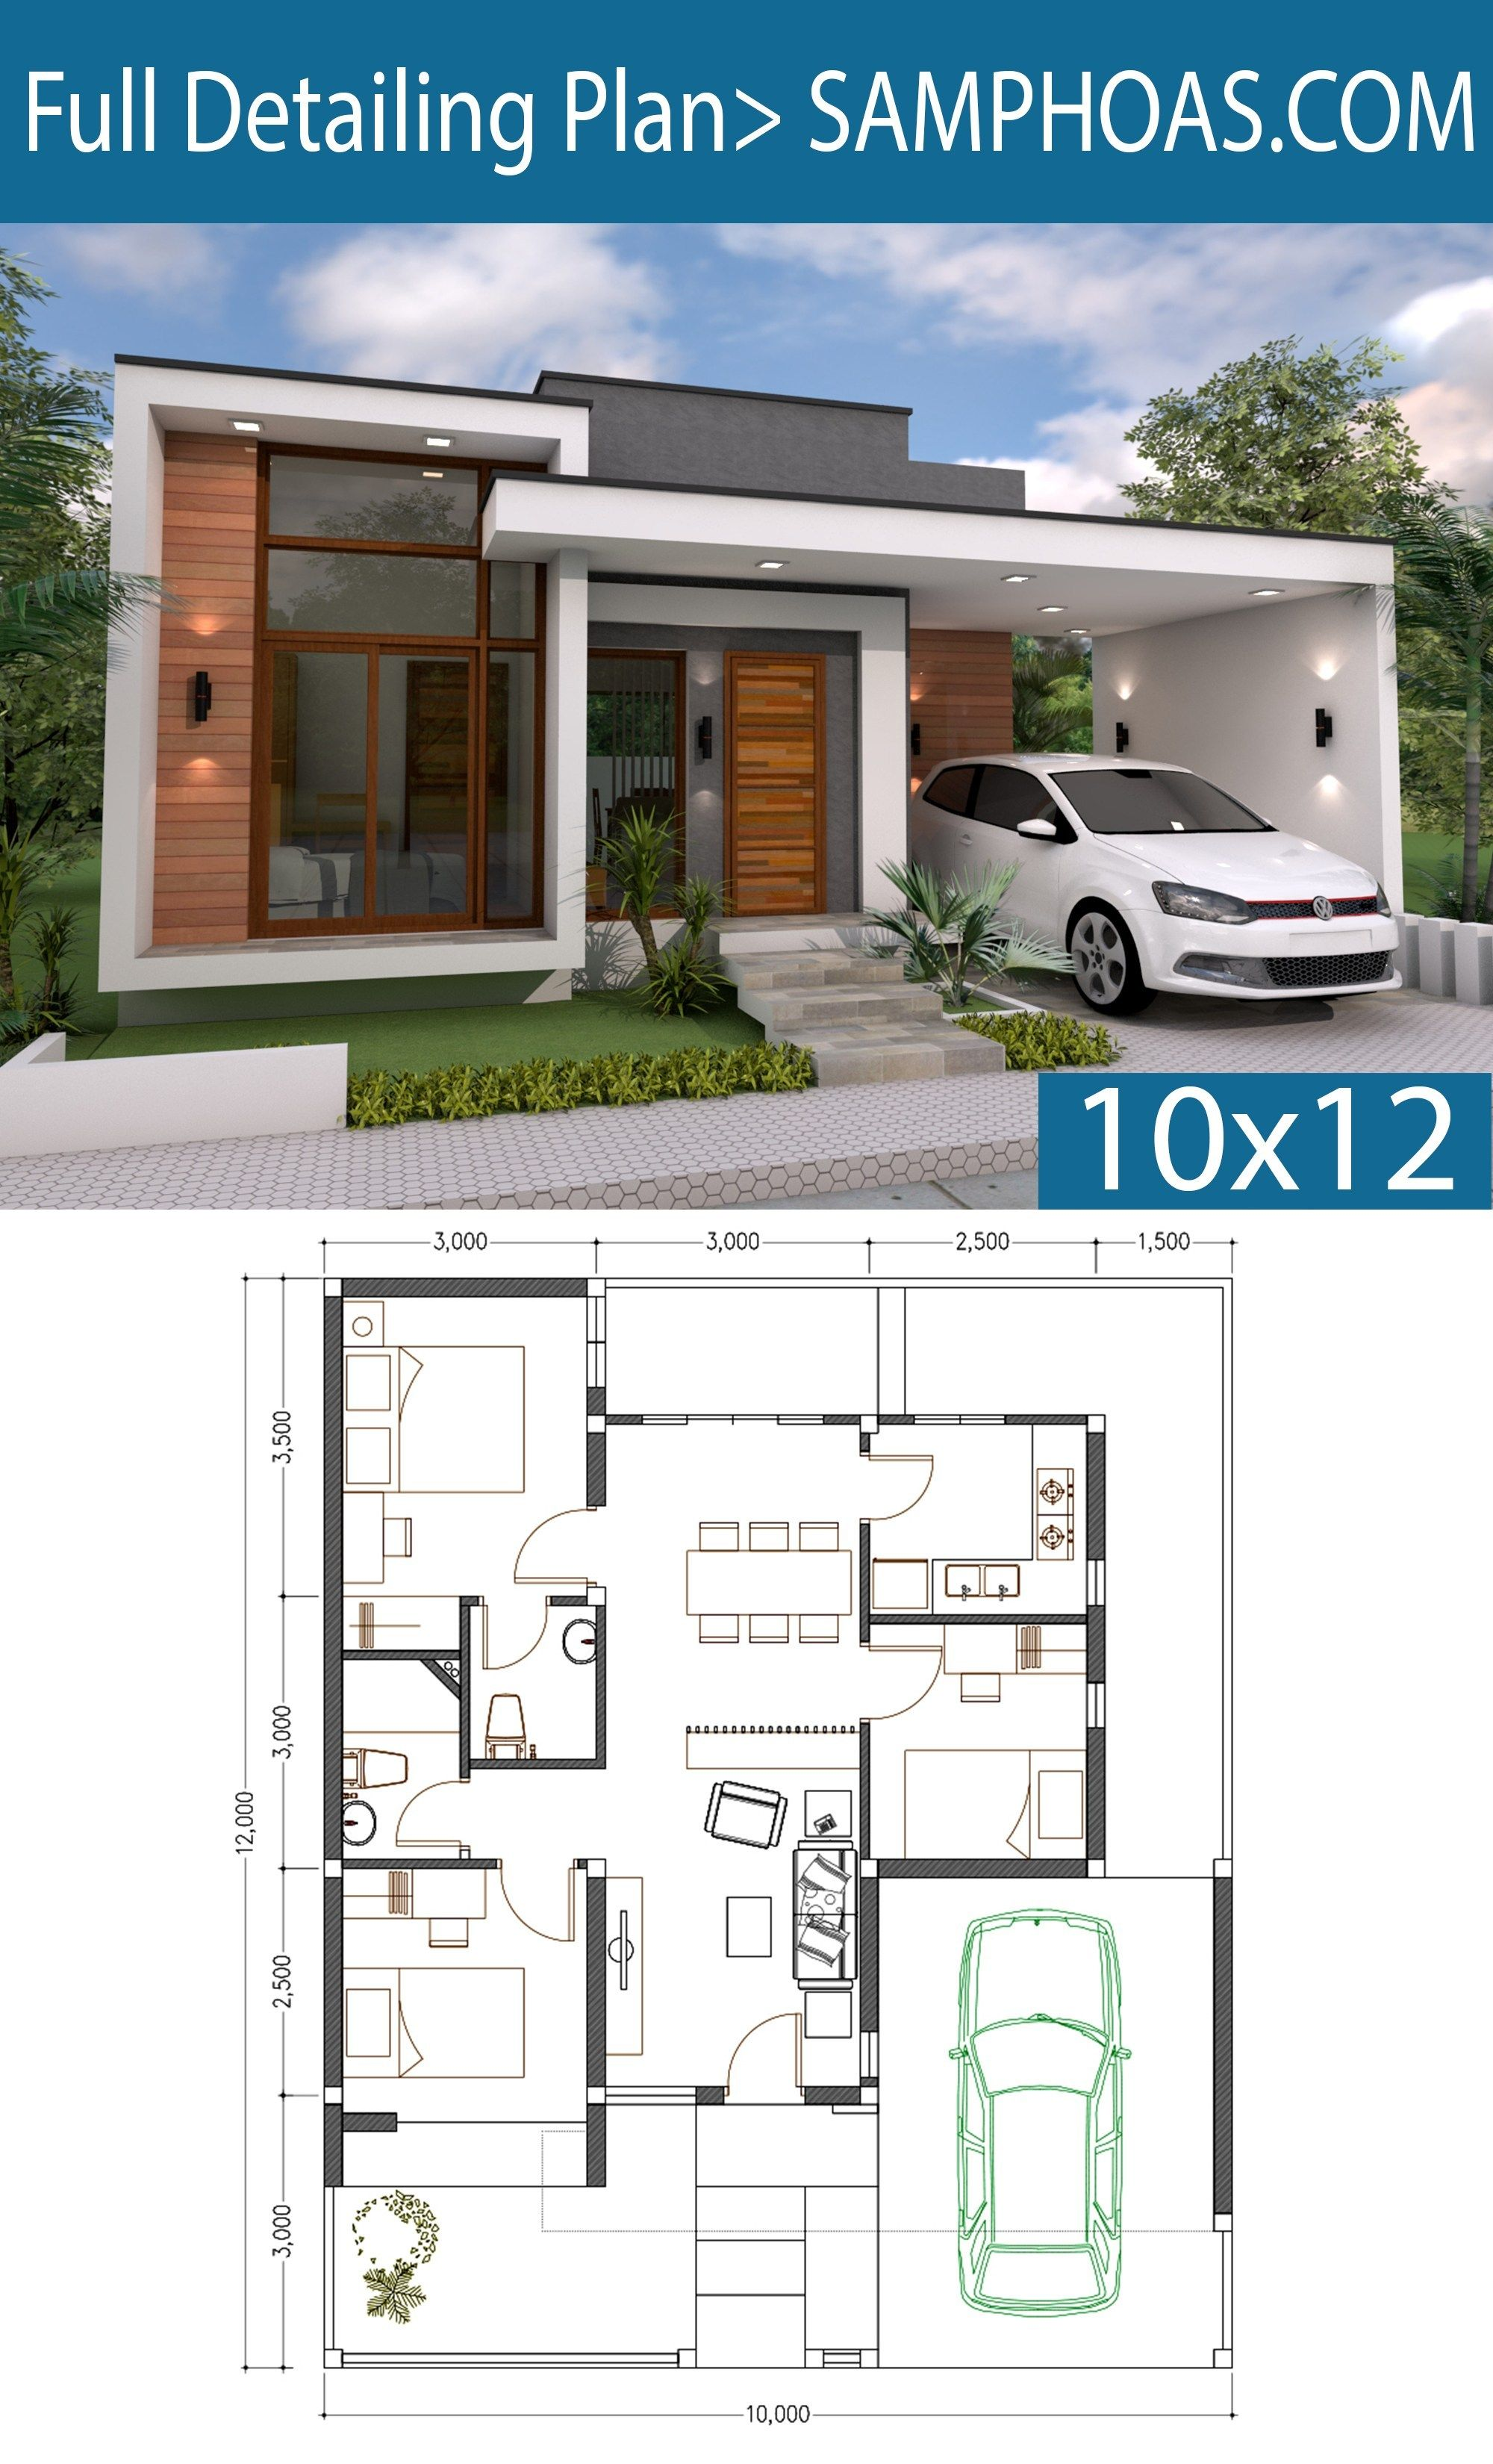 3 Bedrooms Home Design Plan 10x12m Samphoas Plan Bungalow House Plans Modern Style House Plans Modern House Floor Plans